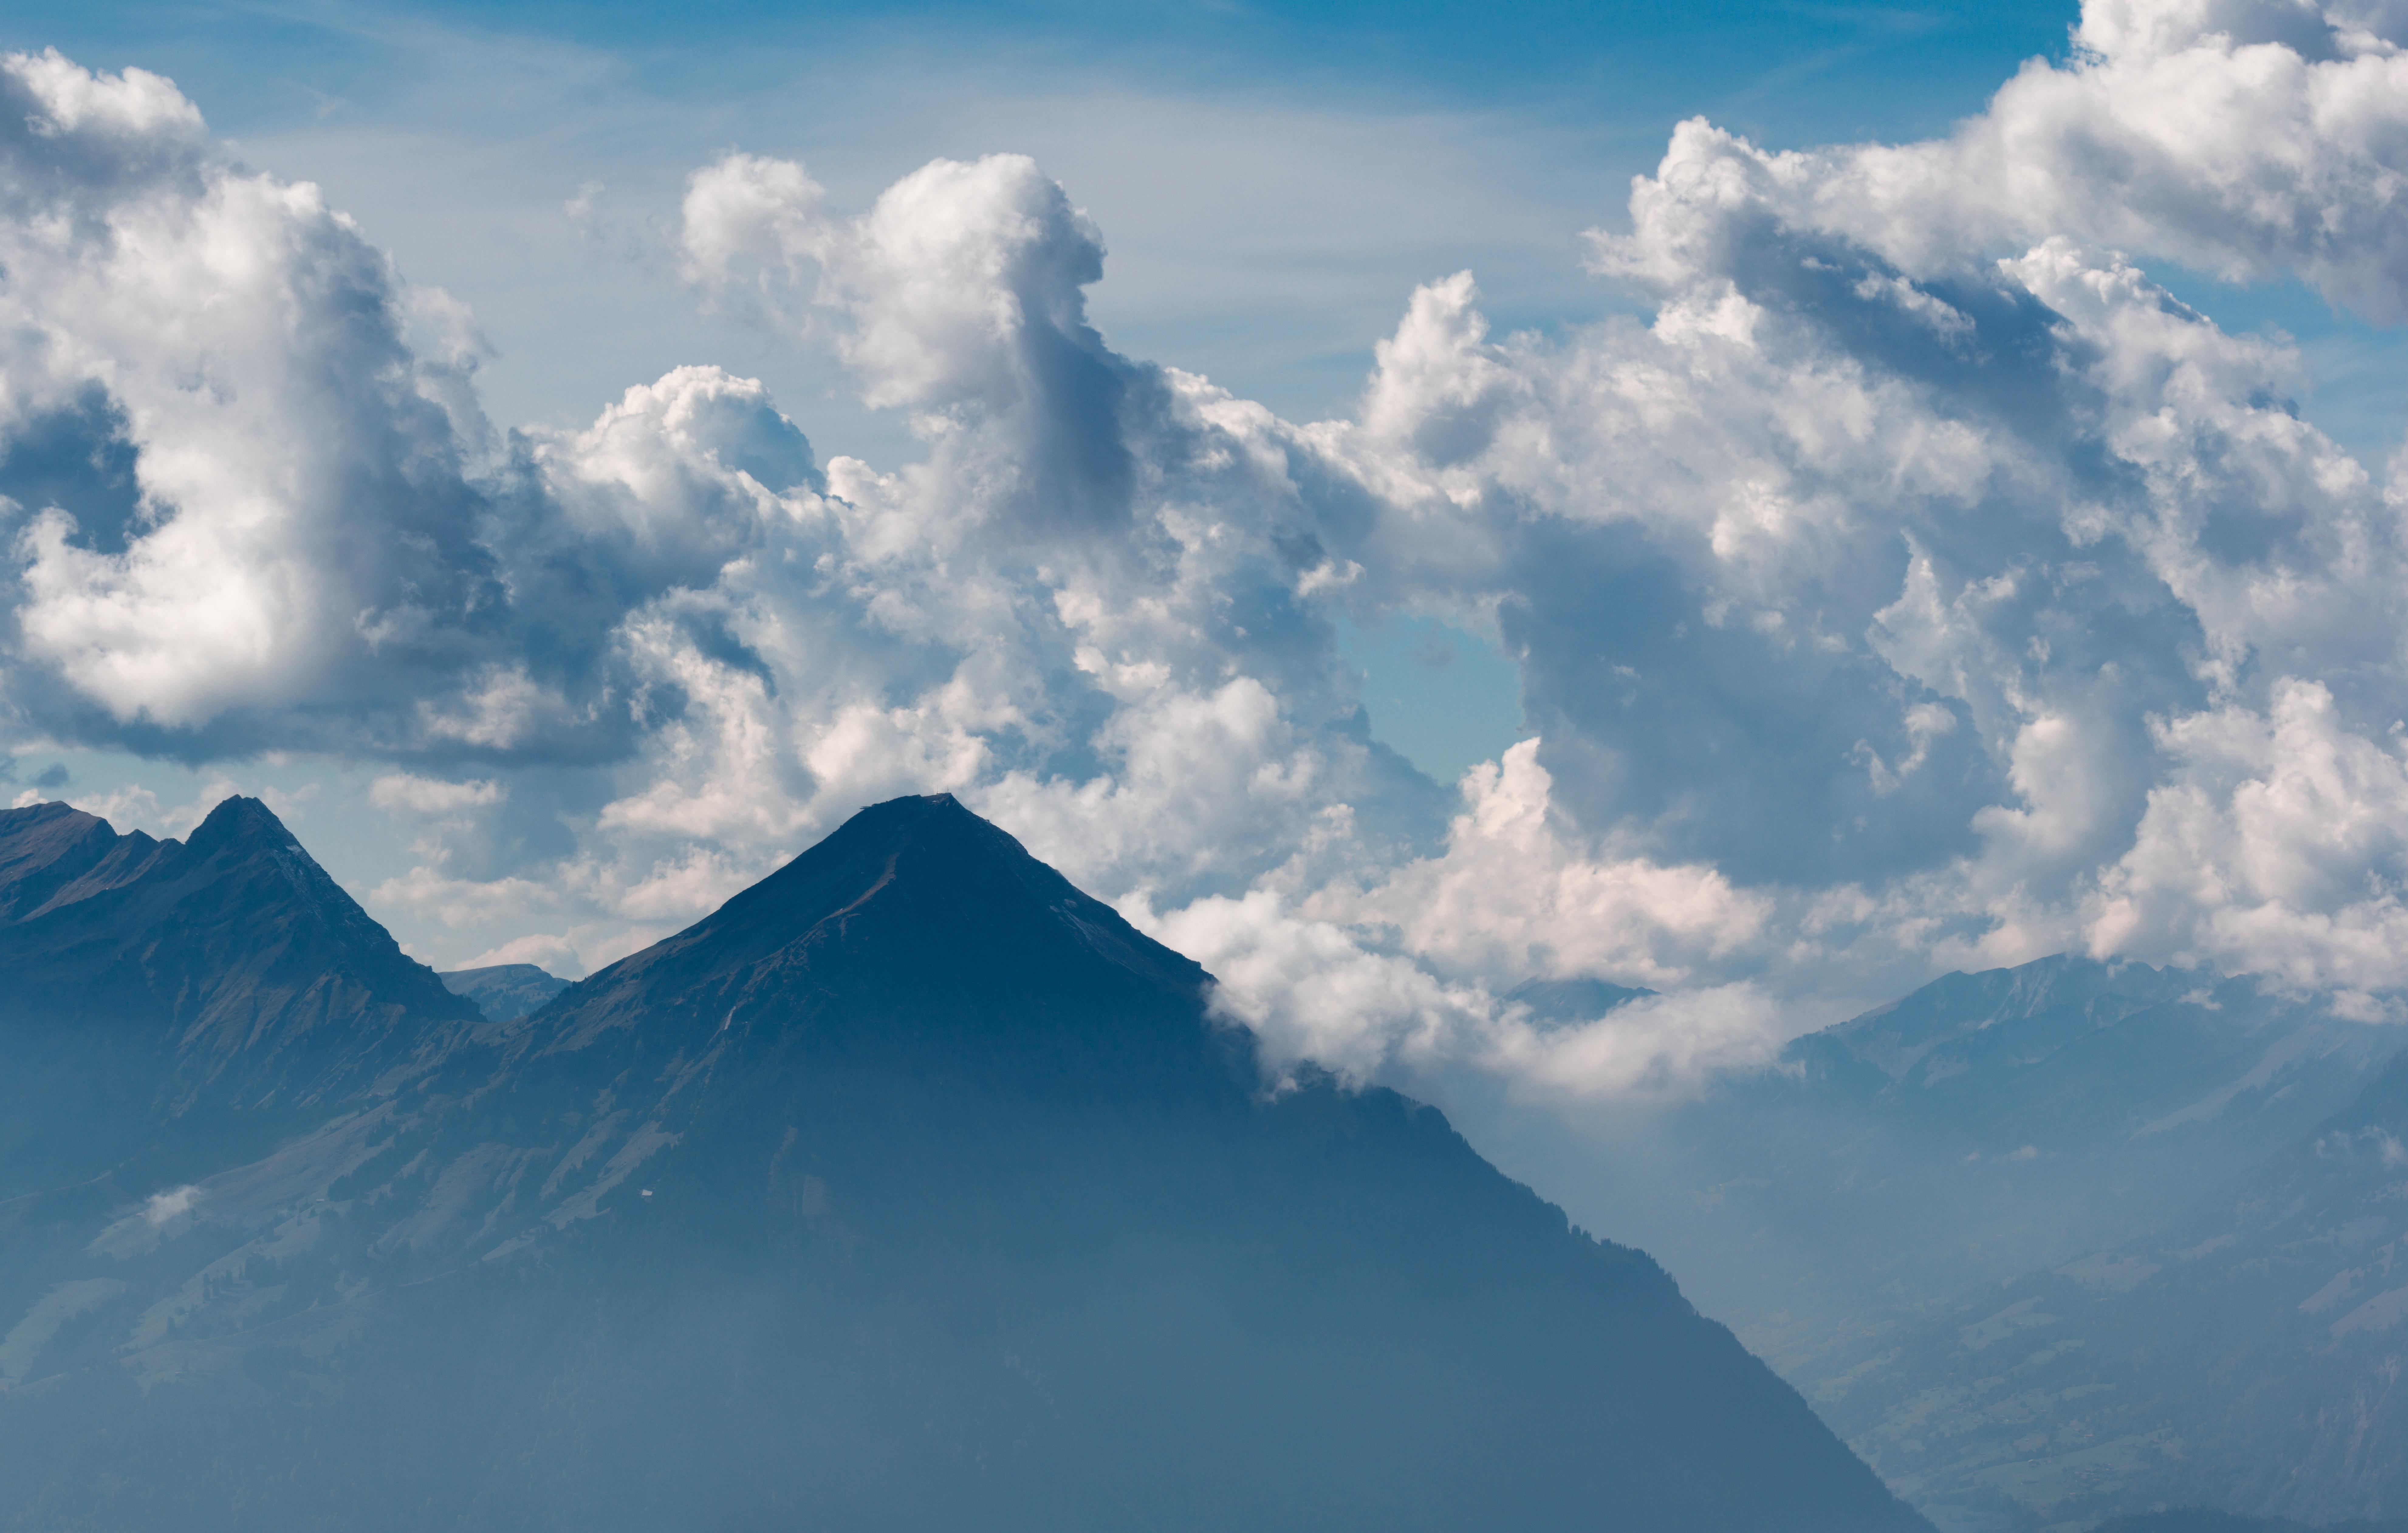 mountain landscape with clouds during daytime